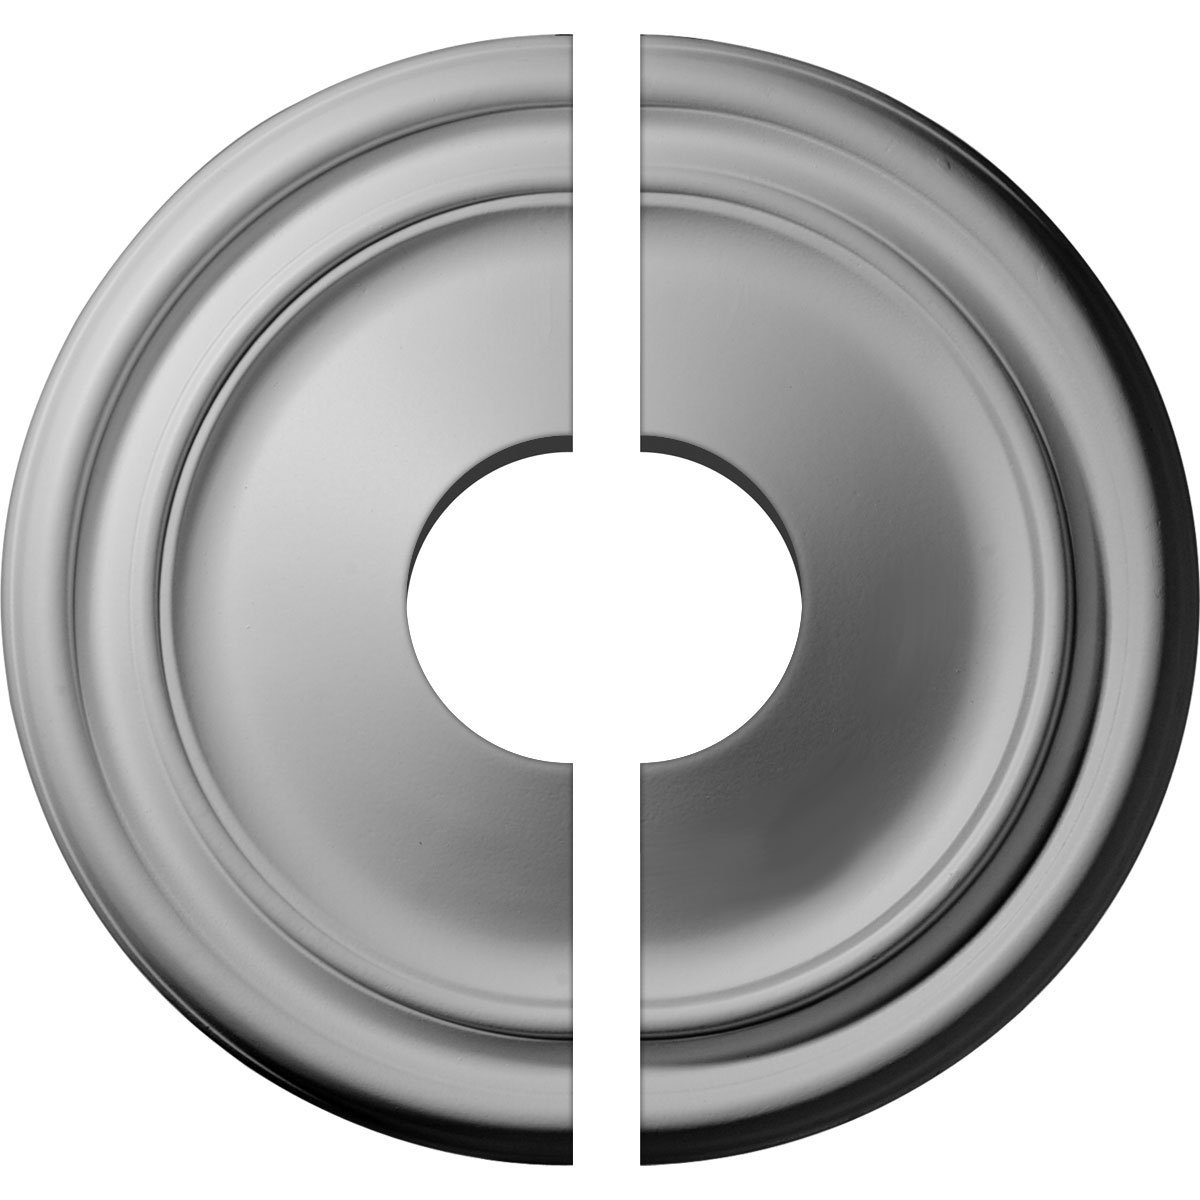 Ekena Millwork CM12RE2-03500 12'' OD ID x 1 3/4'' P Reece Ceiling Medallion, Two Piece (Fits Canopies up to 3 1/2''), Factory Primed and Ready to Paint